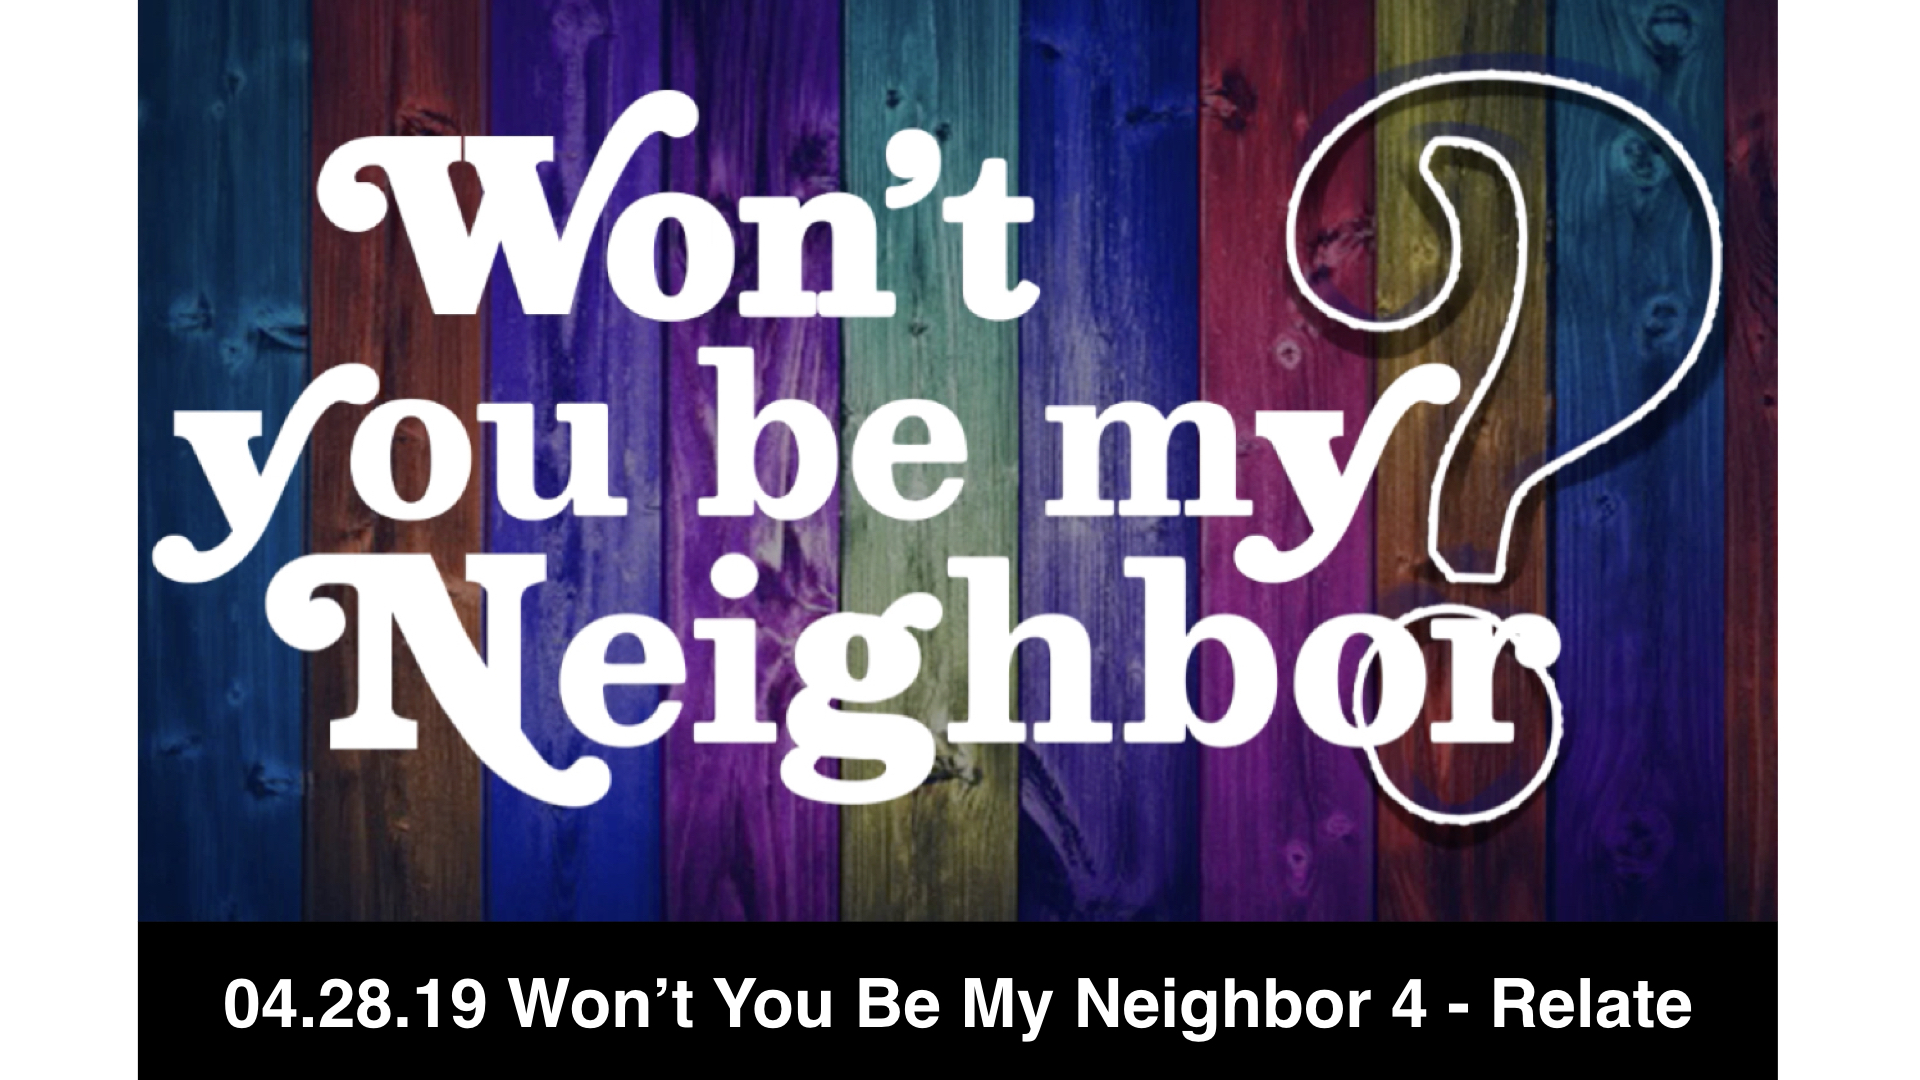 04-28-19 Won't You Be My Neighbor 4 - Relate